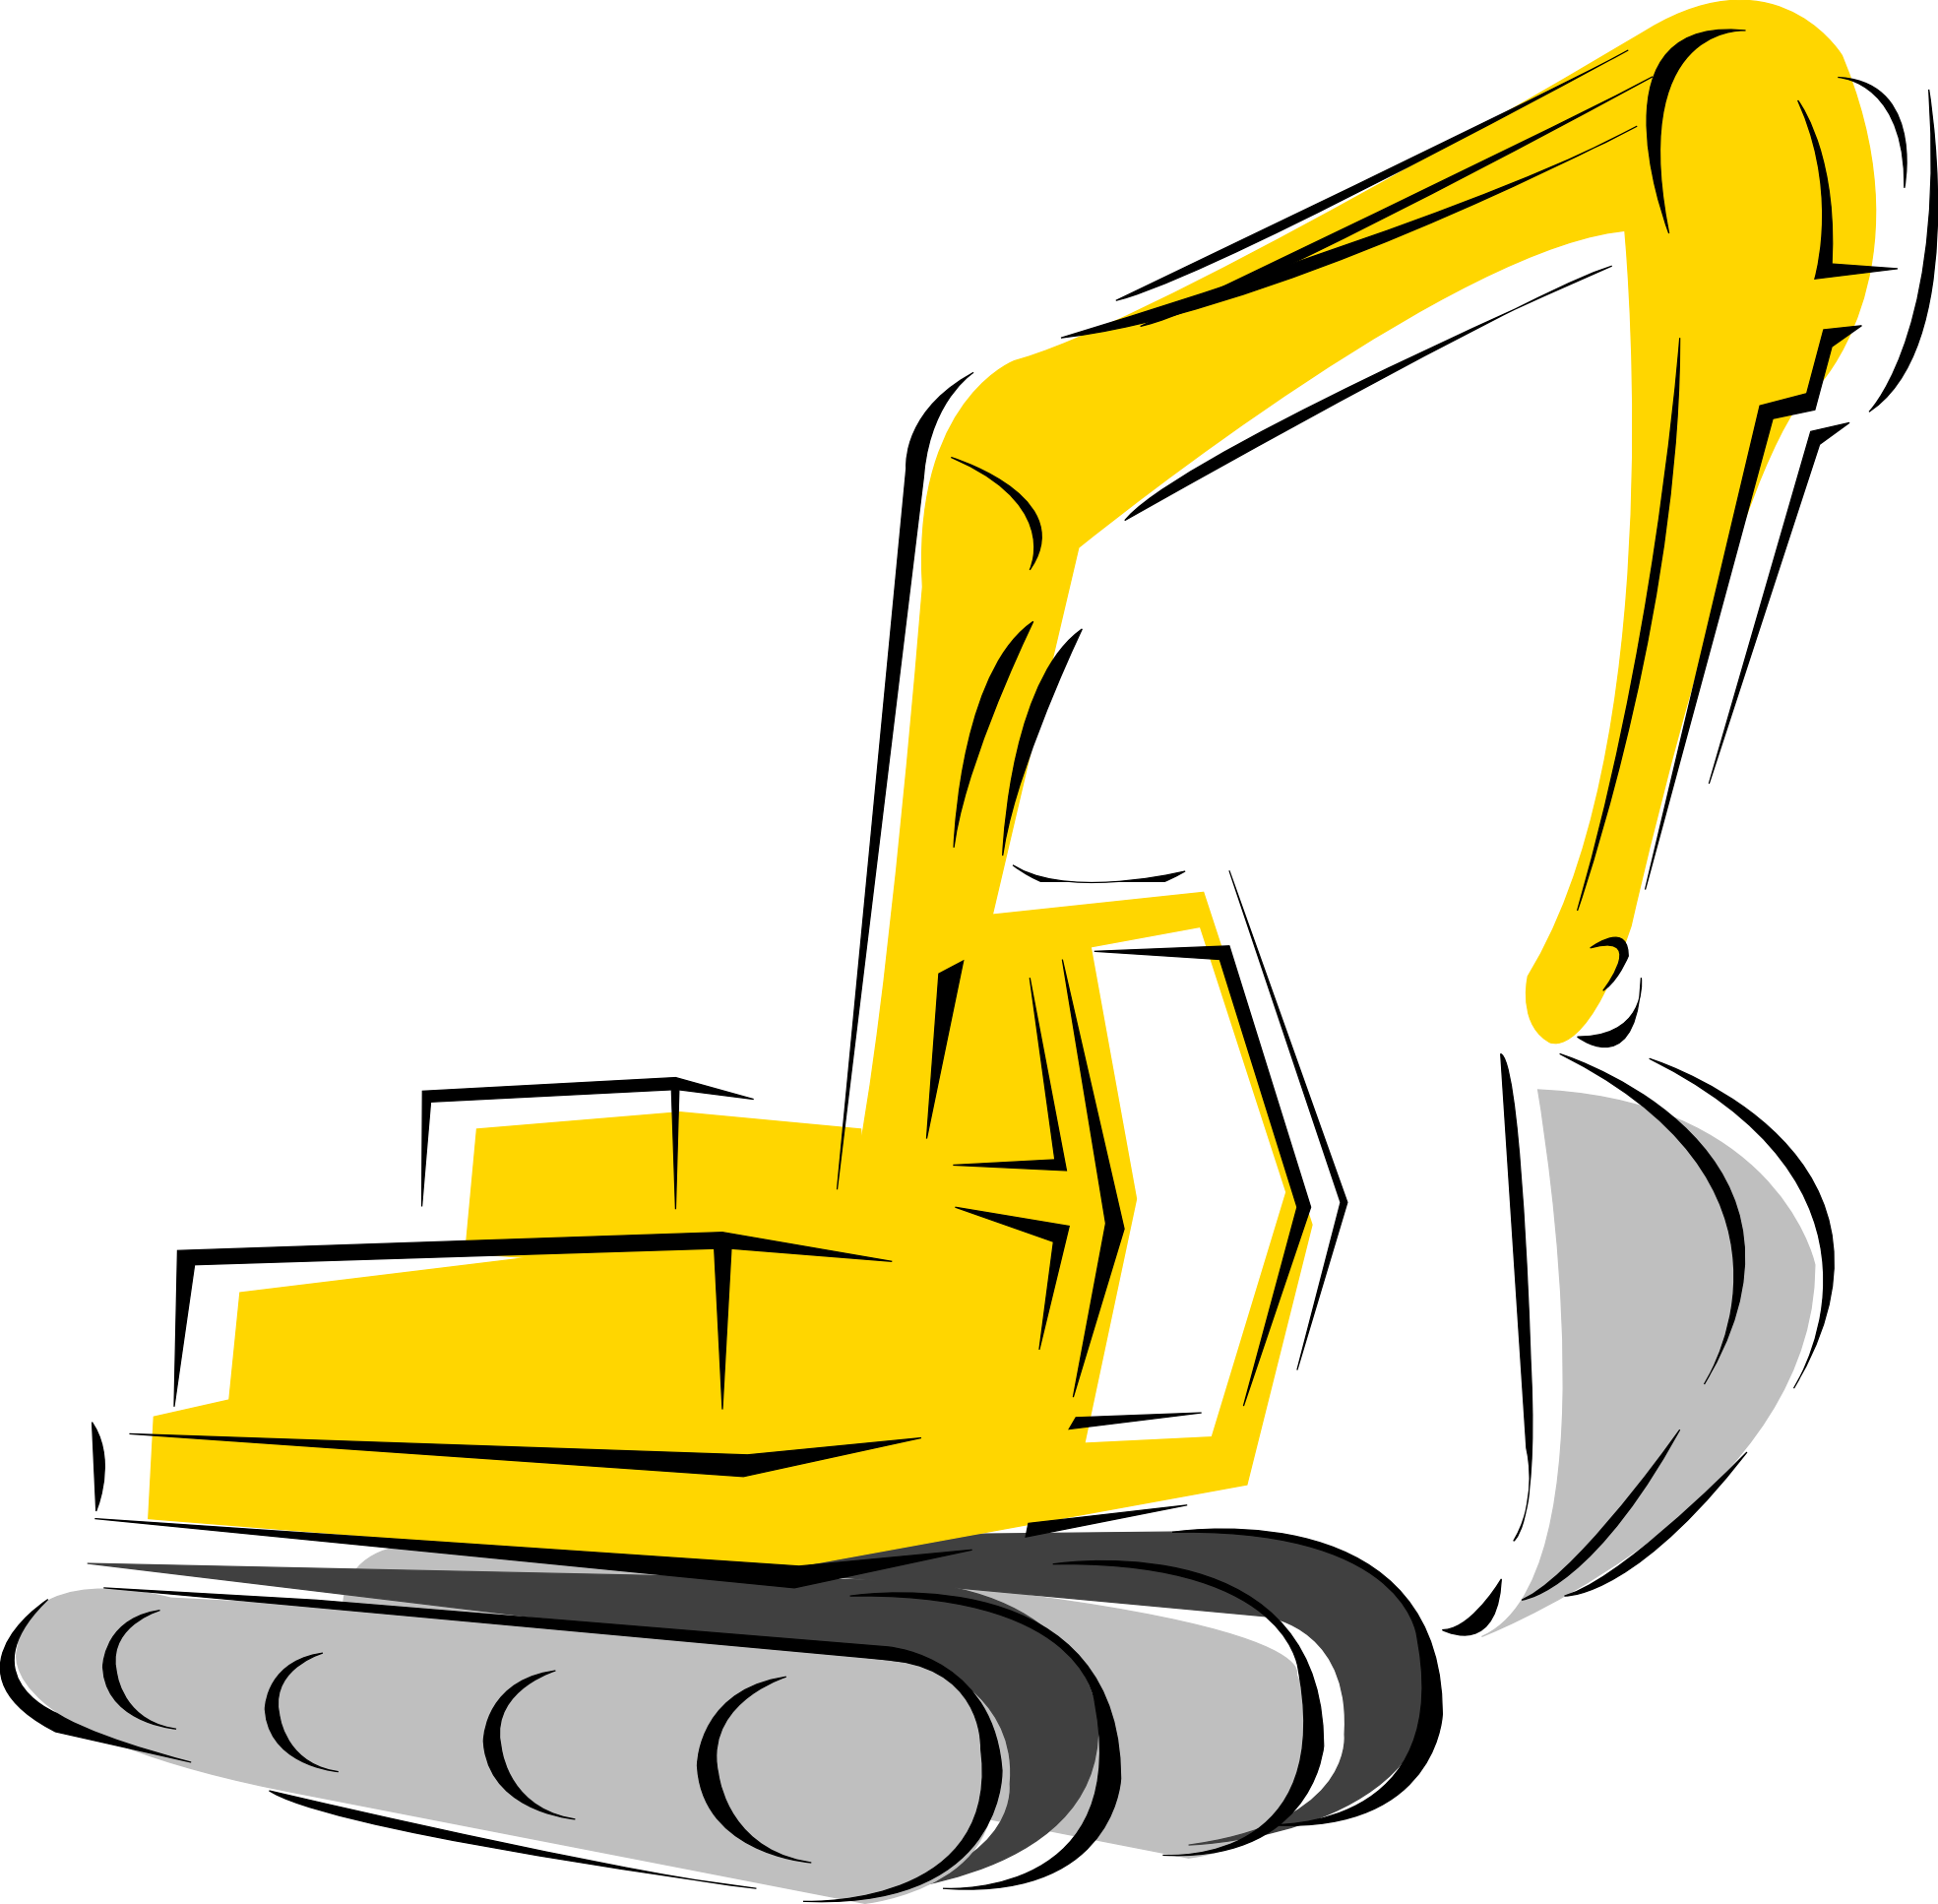 Heavy Equipment Clip Art   Clipart Best